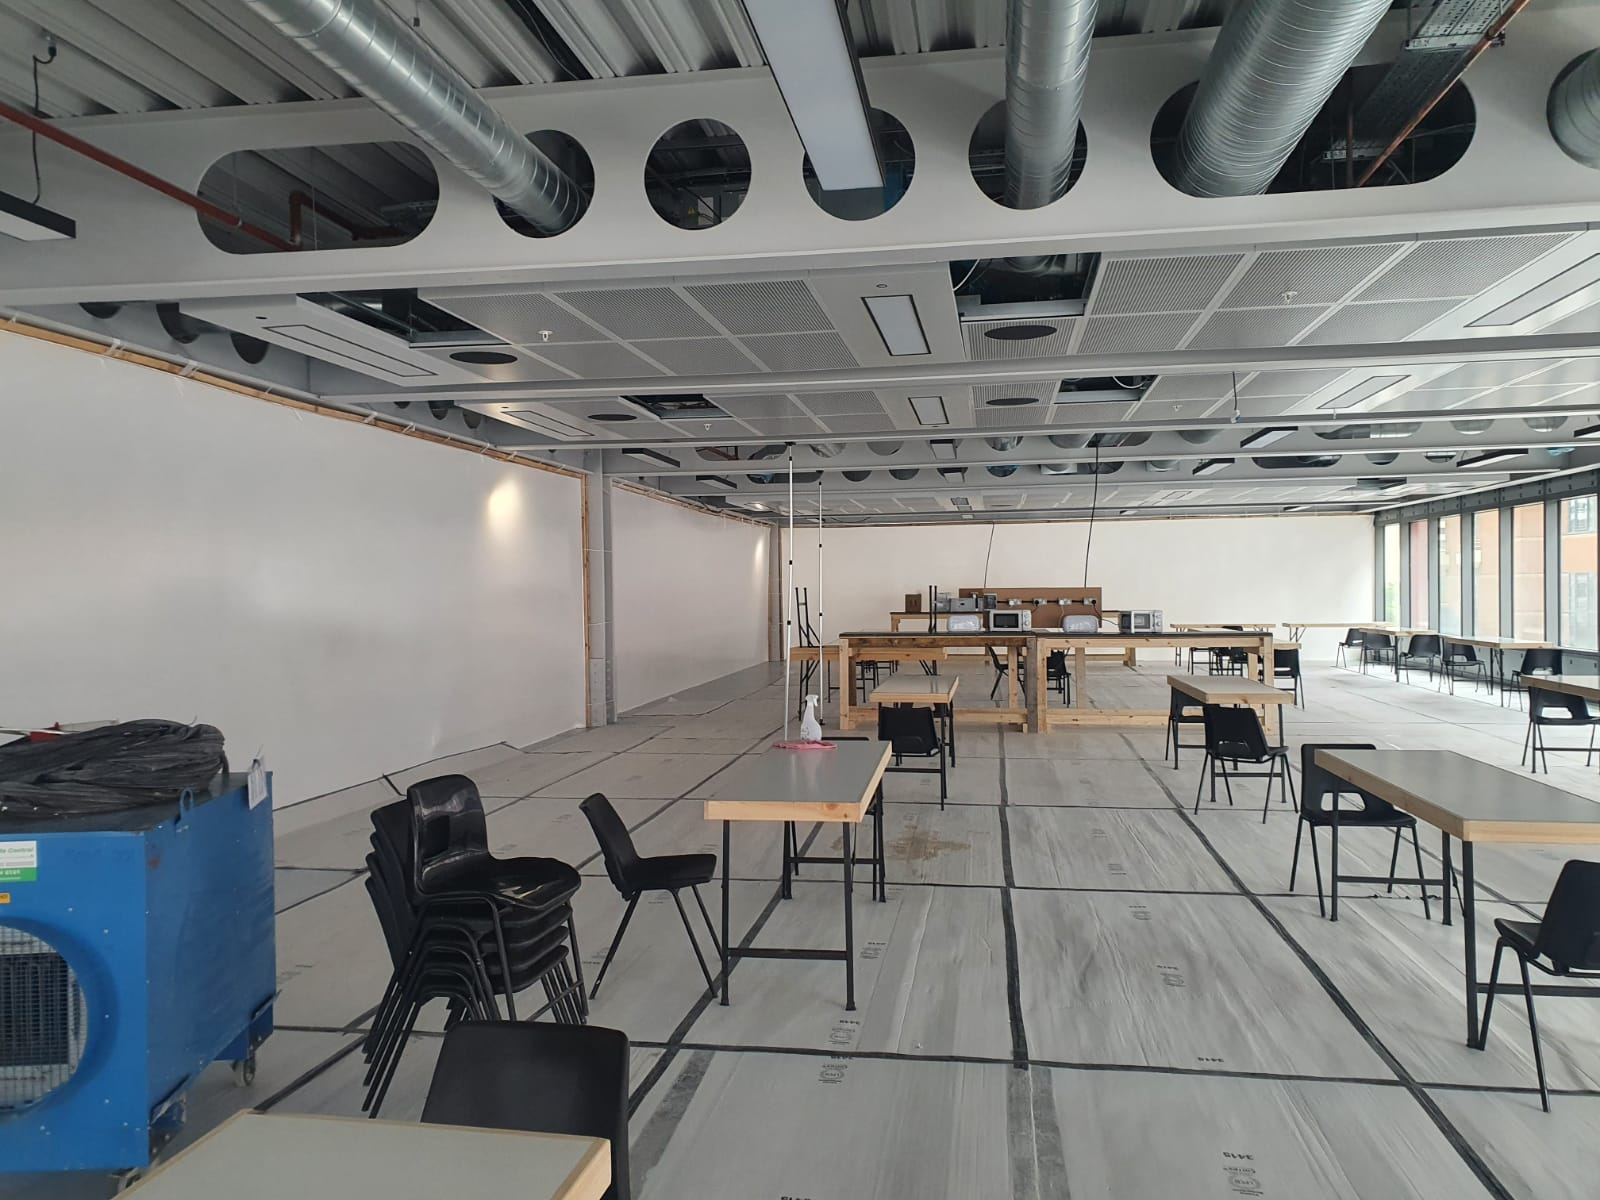 Covid 19 partition installed in a canteen